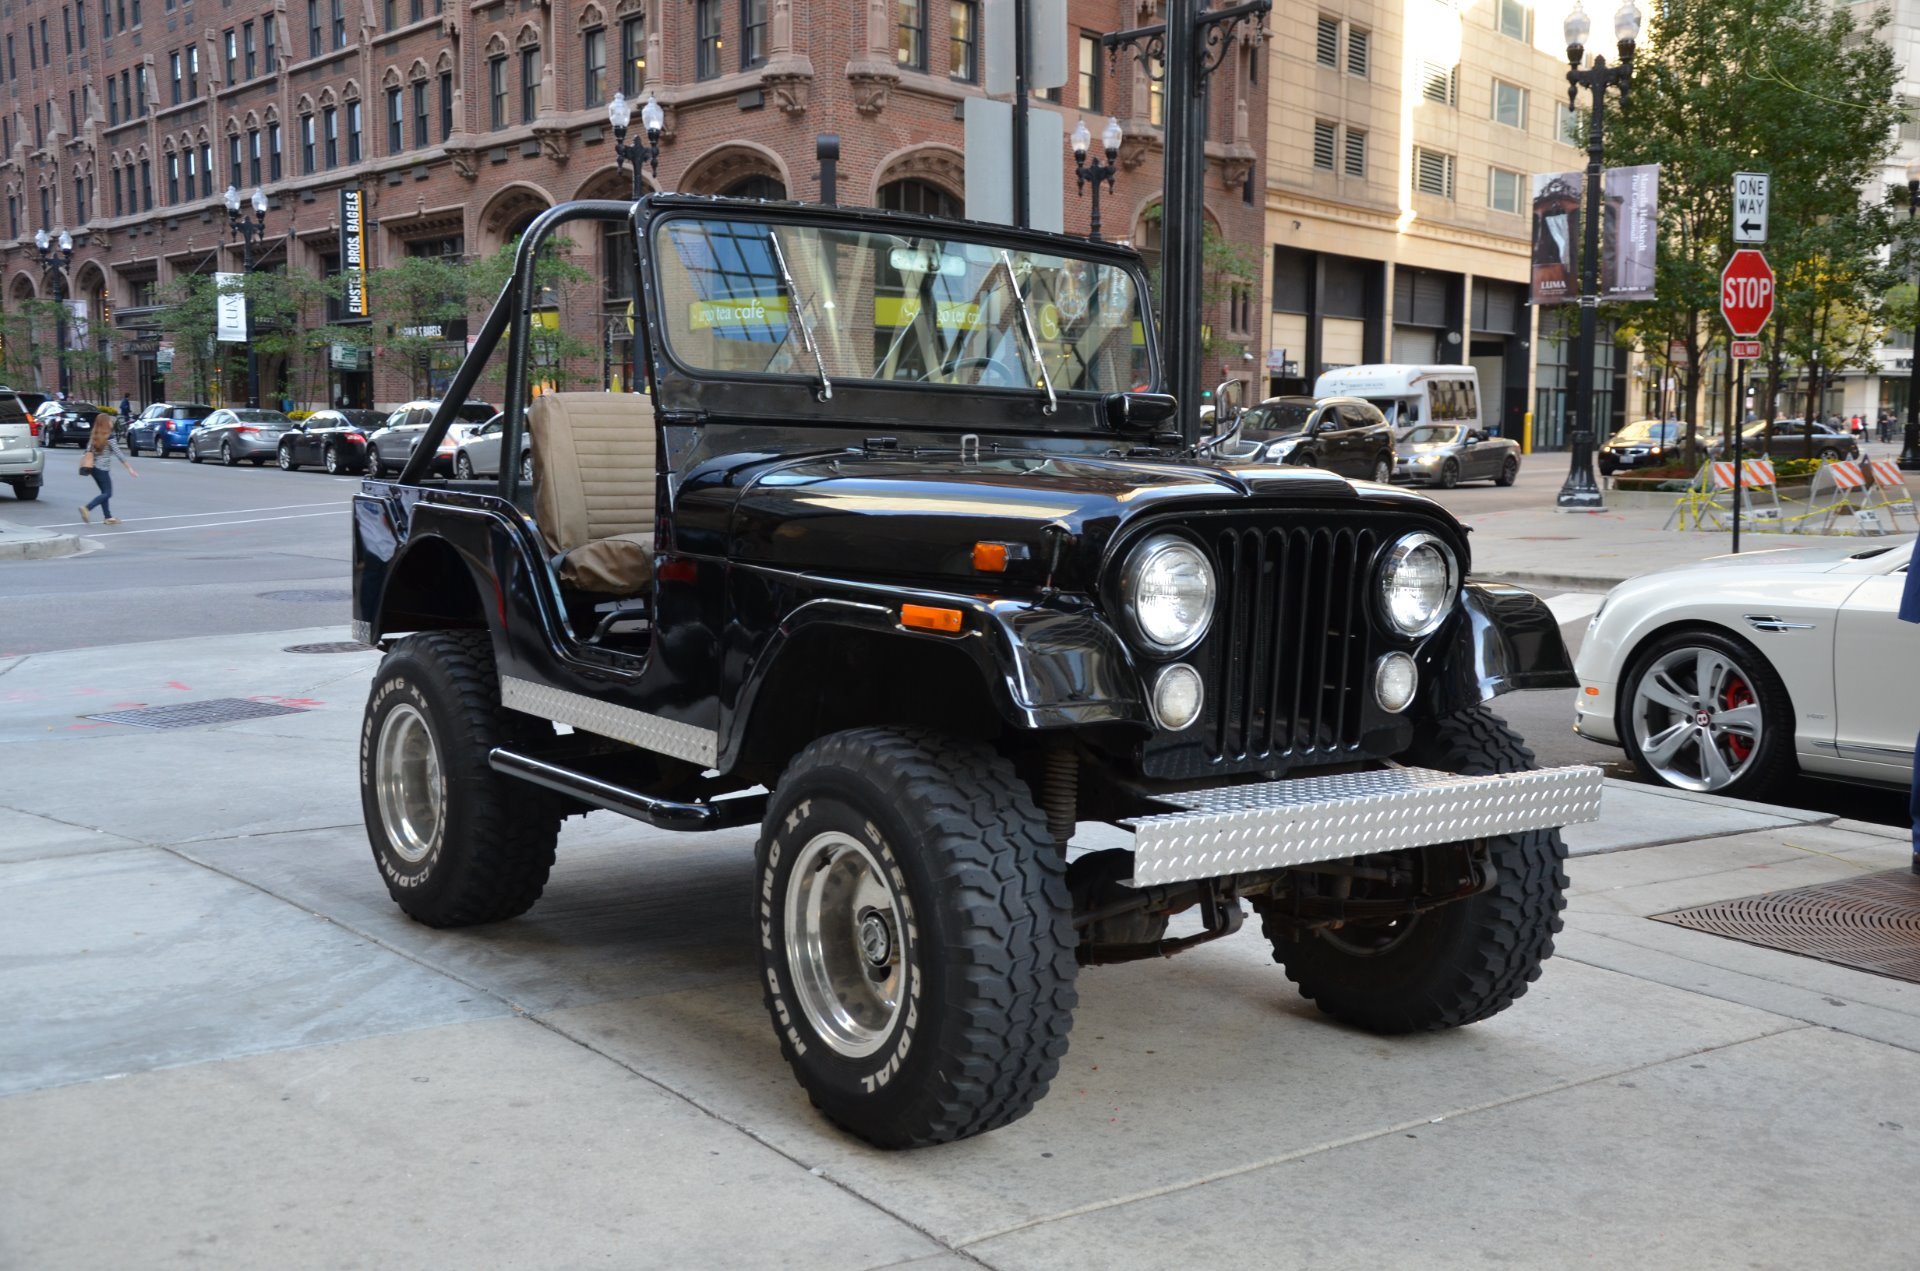 has have miles inline stlmo forsale cj s a transmission it engine c htm scrambler jeep the for speed original sale i manual